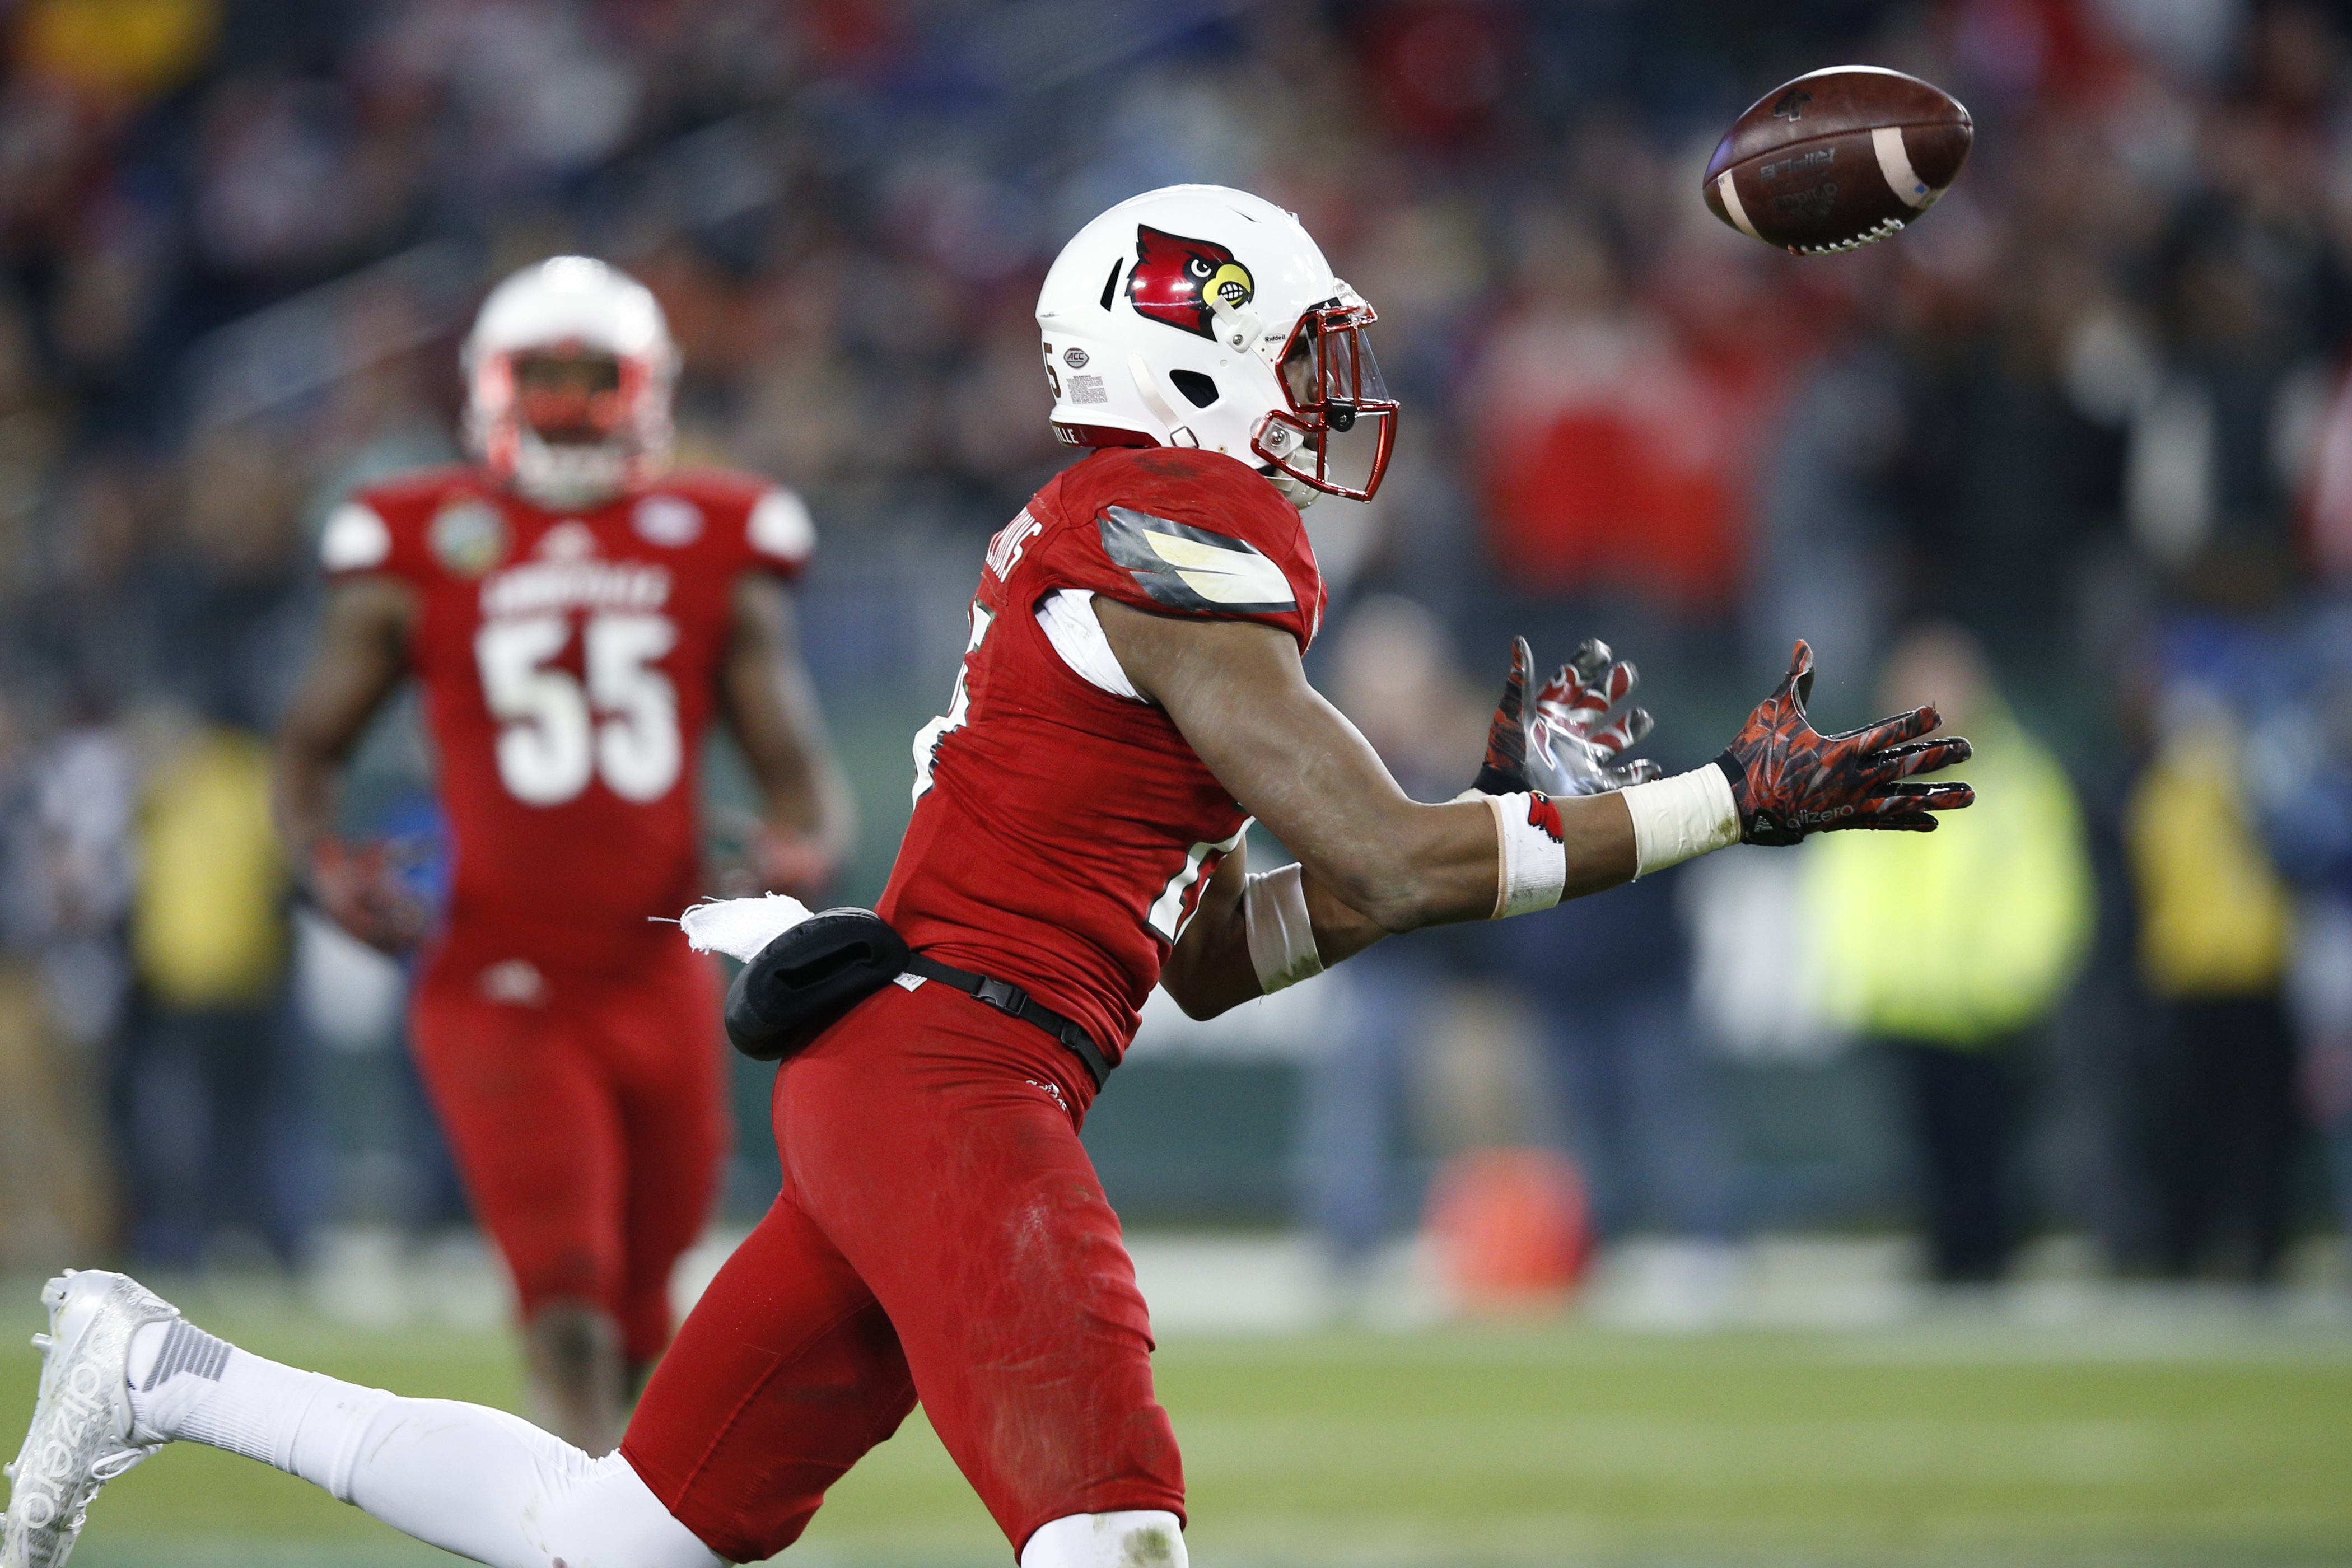 Louisville safety Josh Harvey-Clemons transferred after failing two drug tests at Georgia. (Getty Images)